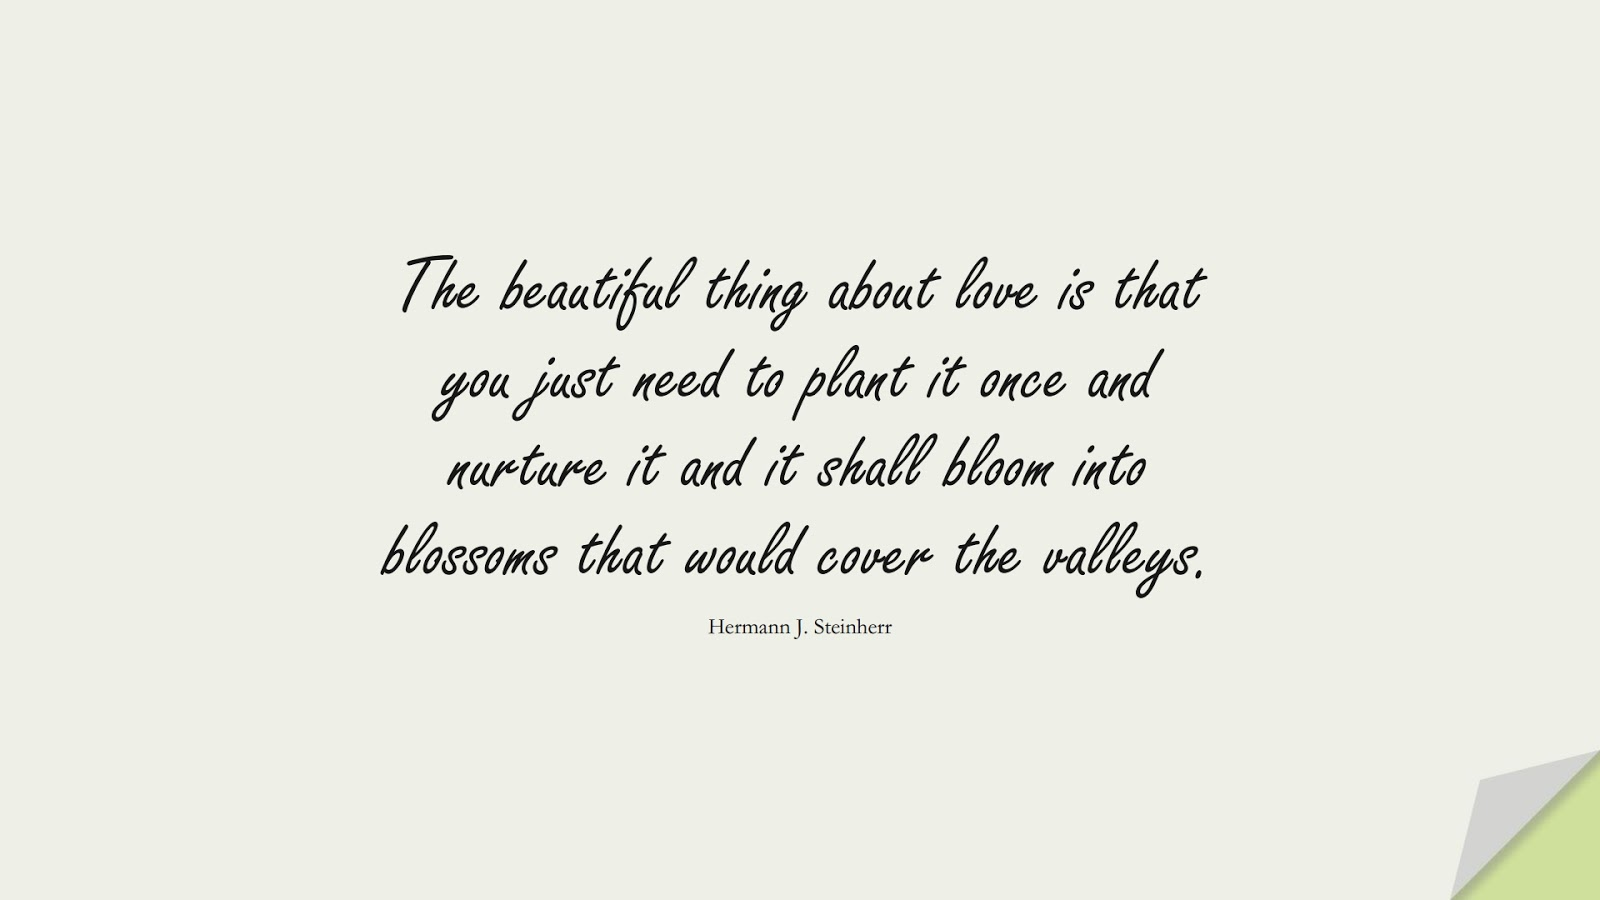 The beautiful thing about love is that you just need to plant it once and nurture it and it shall bloom into blossoms that would cover the valleys. (Hermann J. Steinherr);  #LoveQuotes